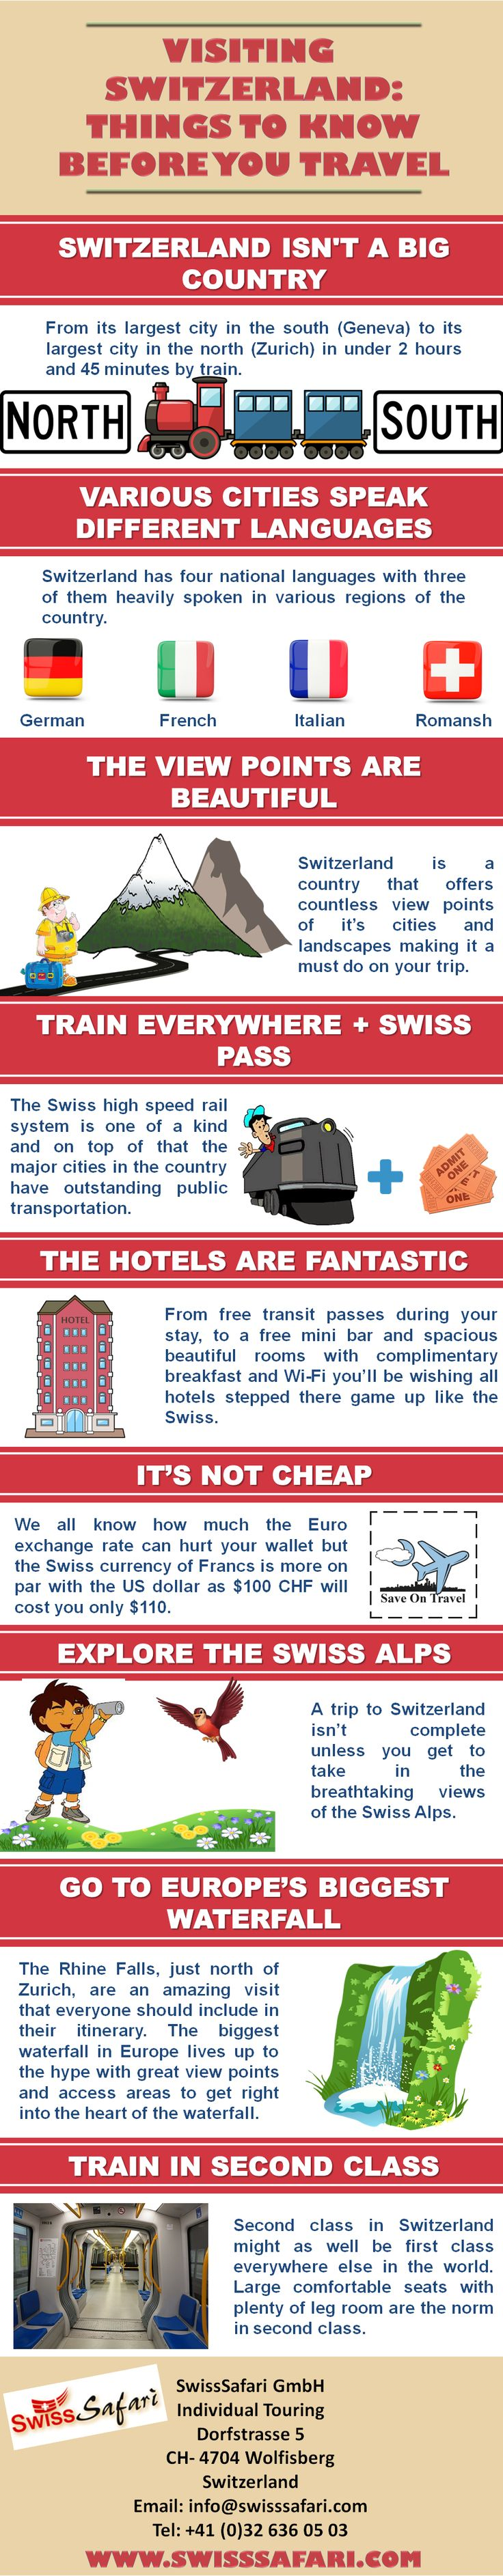 VISITING SWITZERLAND: 9 THINGS TO KNOW BEFORE YOU TRAVEL #Infographic #Infografía